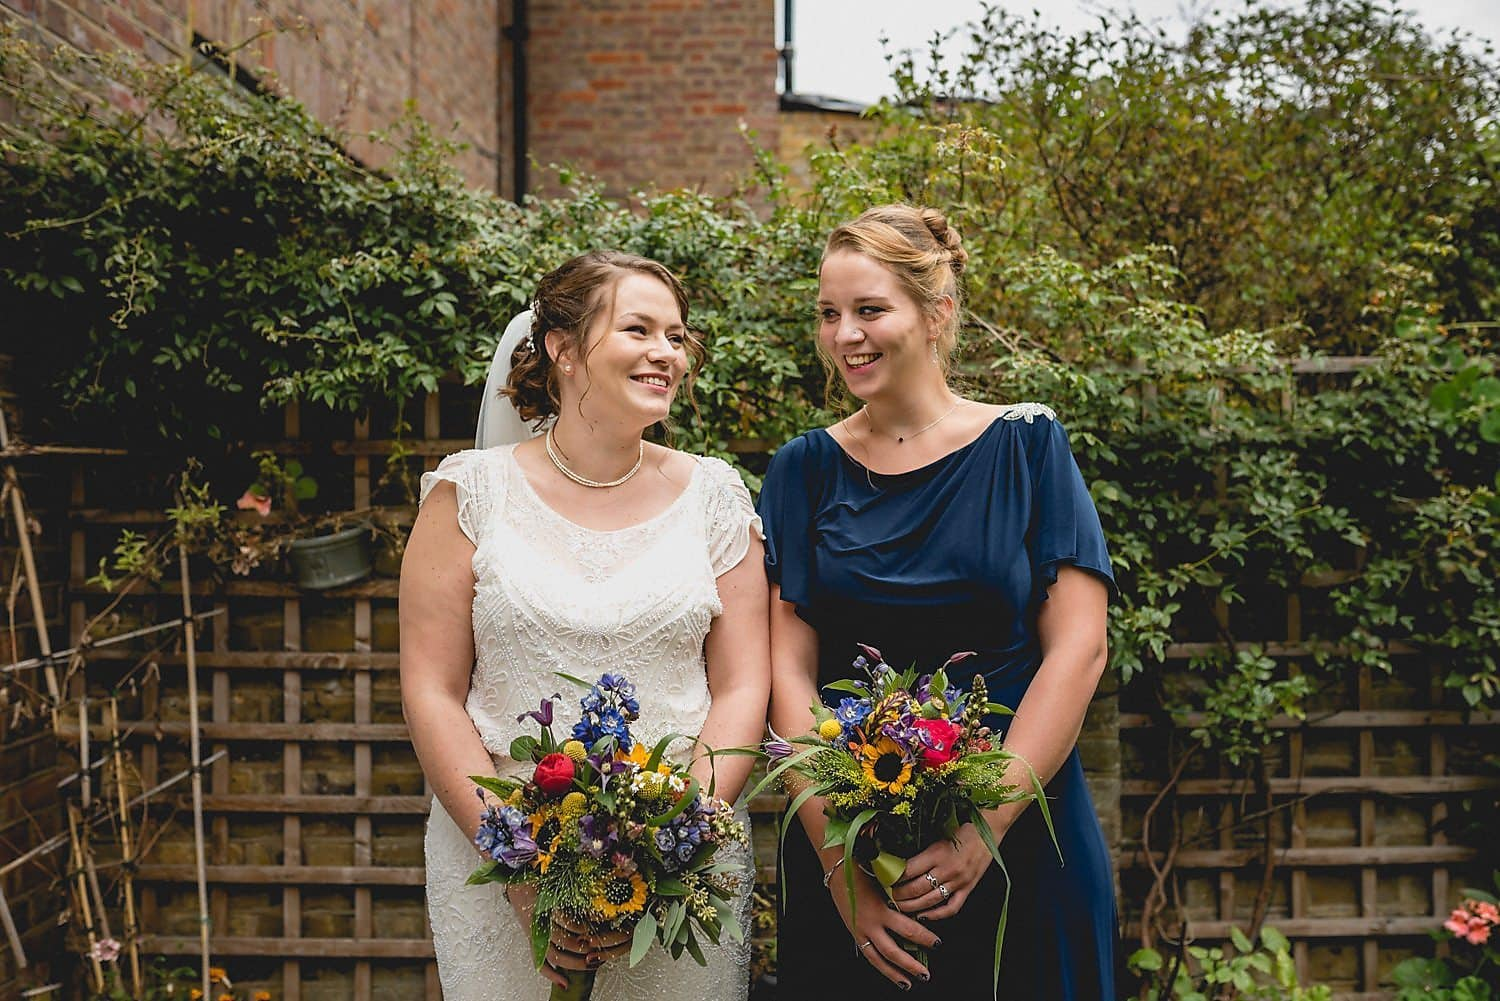 The bride and her maid of honour grin at each other outside the house before heading to the wedding